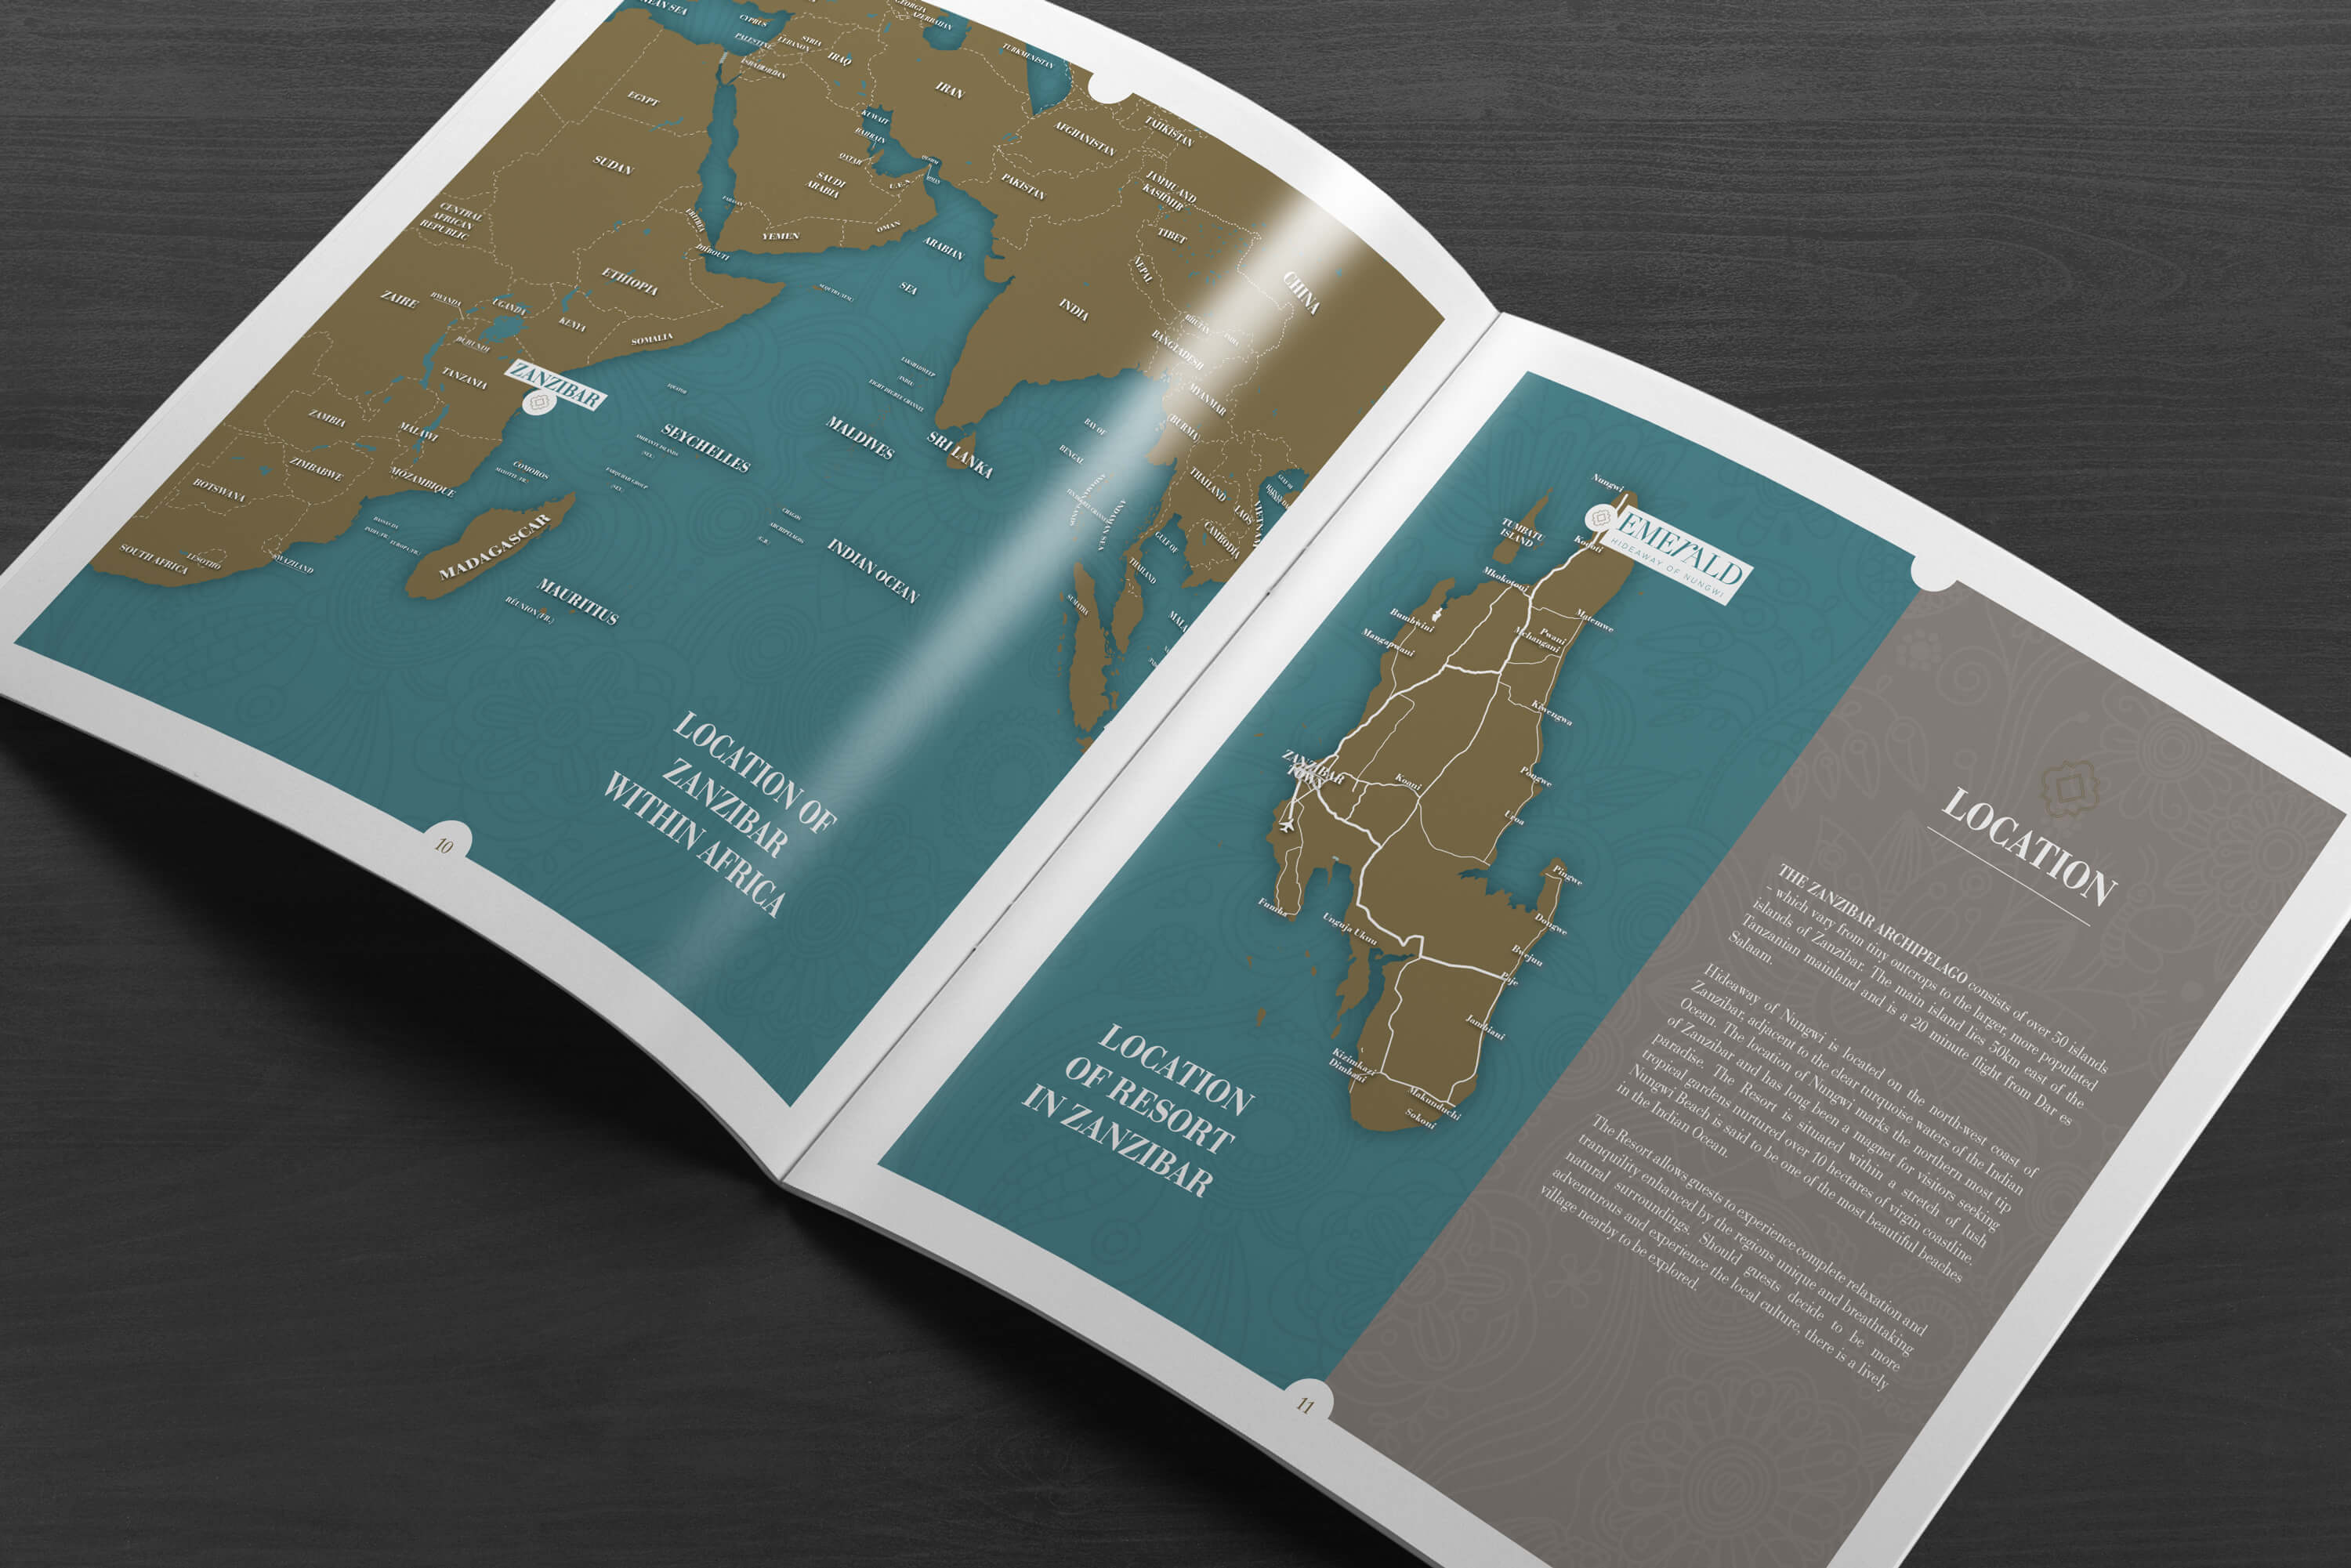 A copy of the JLL Emerald Resorts corporate brochure internal pages showing maps